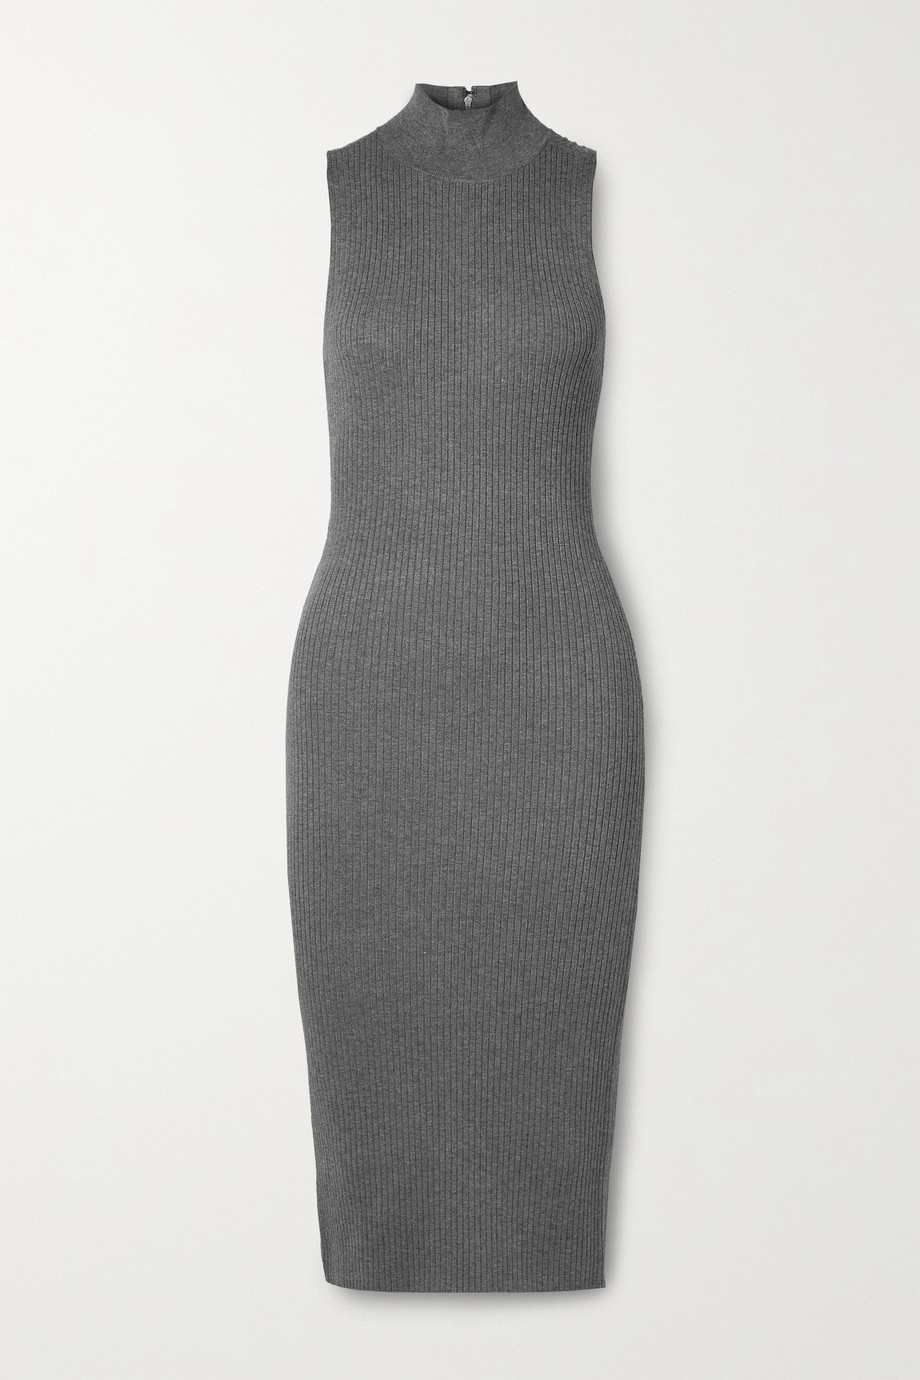 Alice + Olivia Brooklynne ribbed stretch-knit turtleneck midi dress